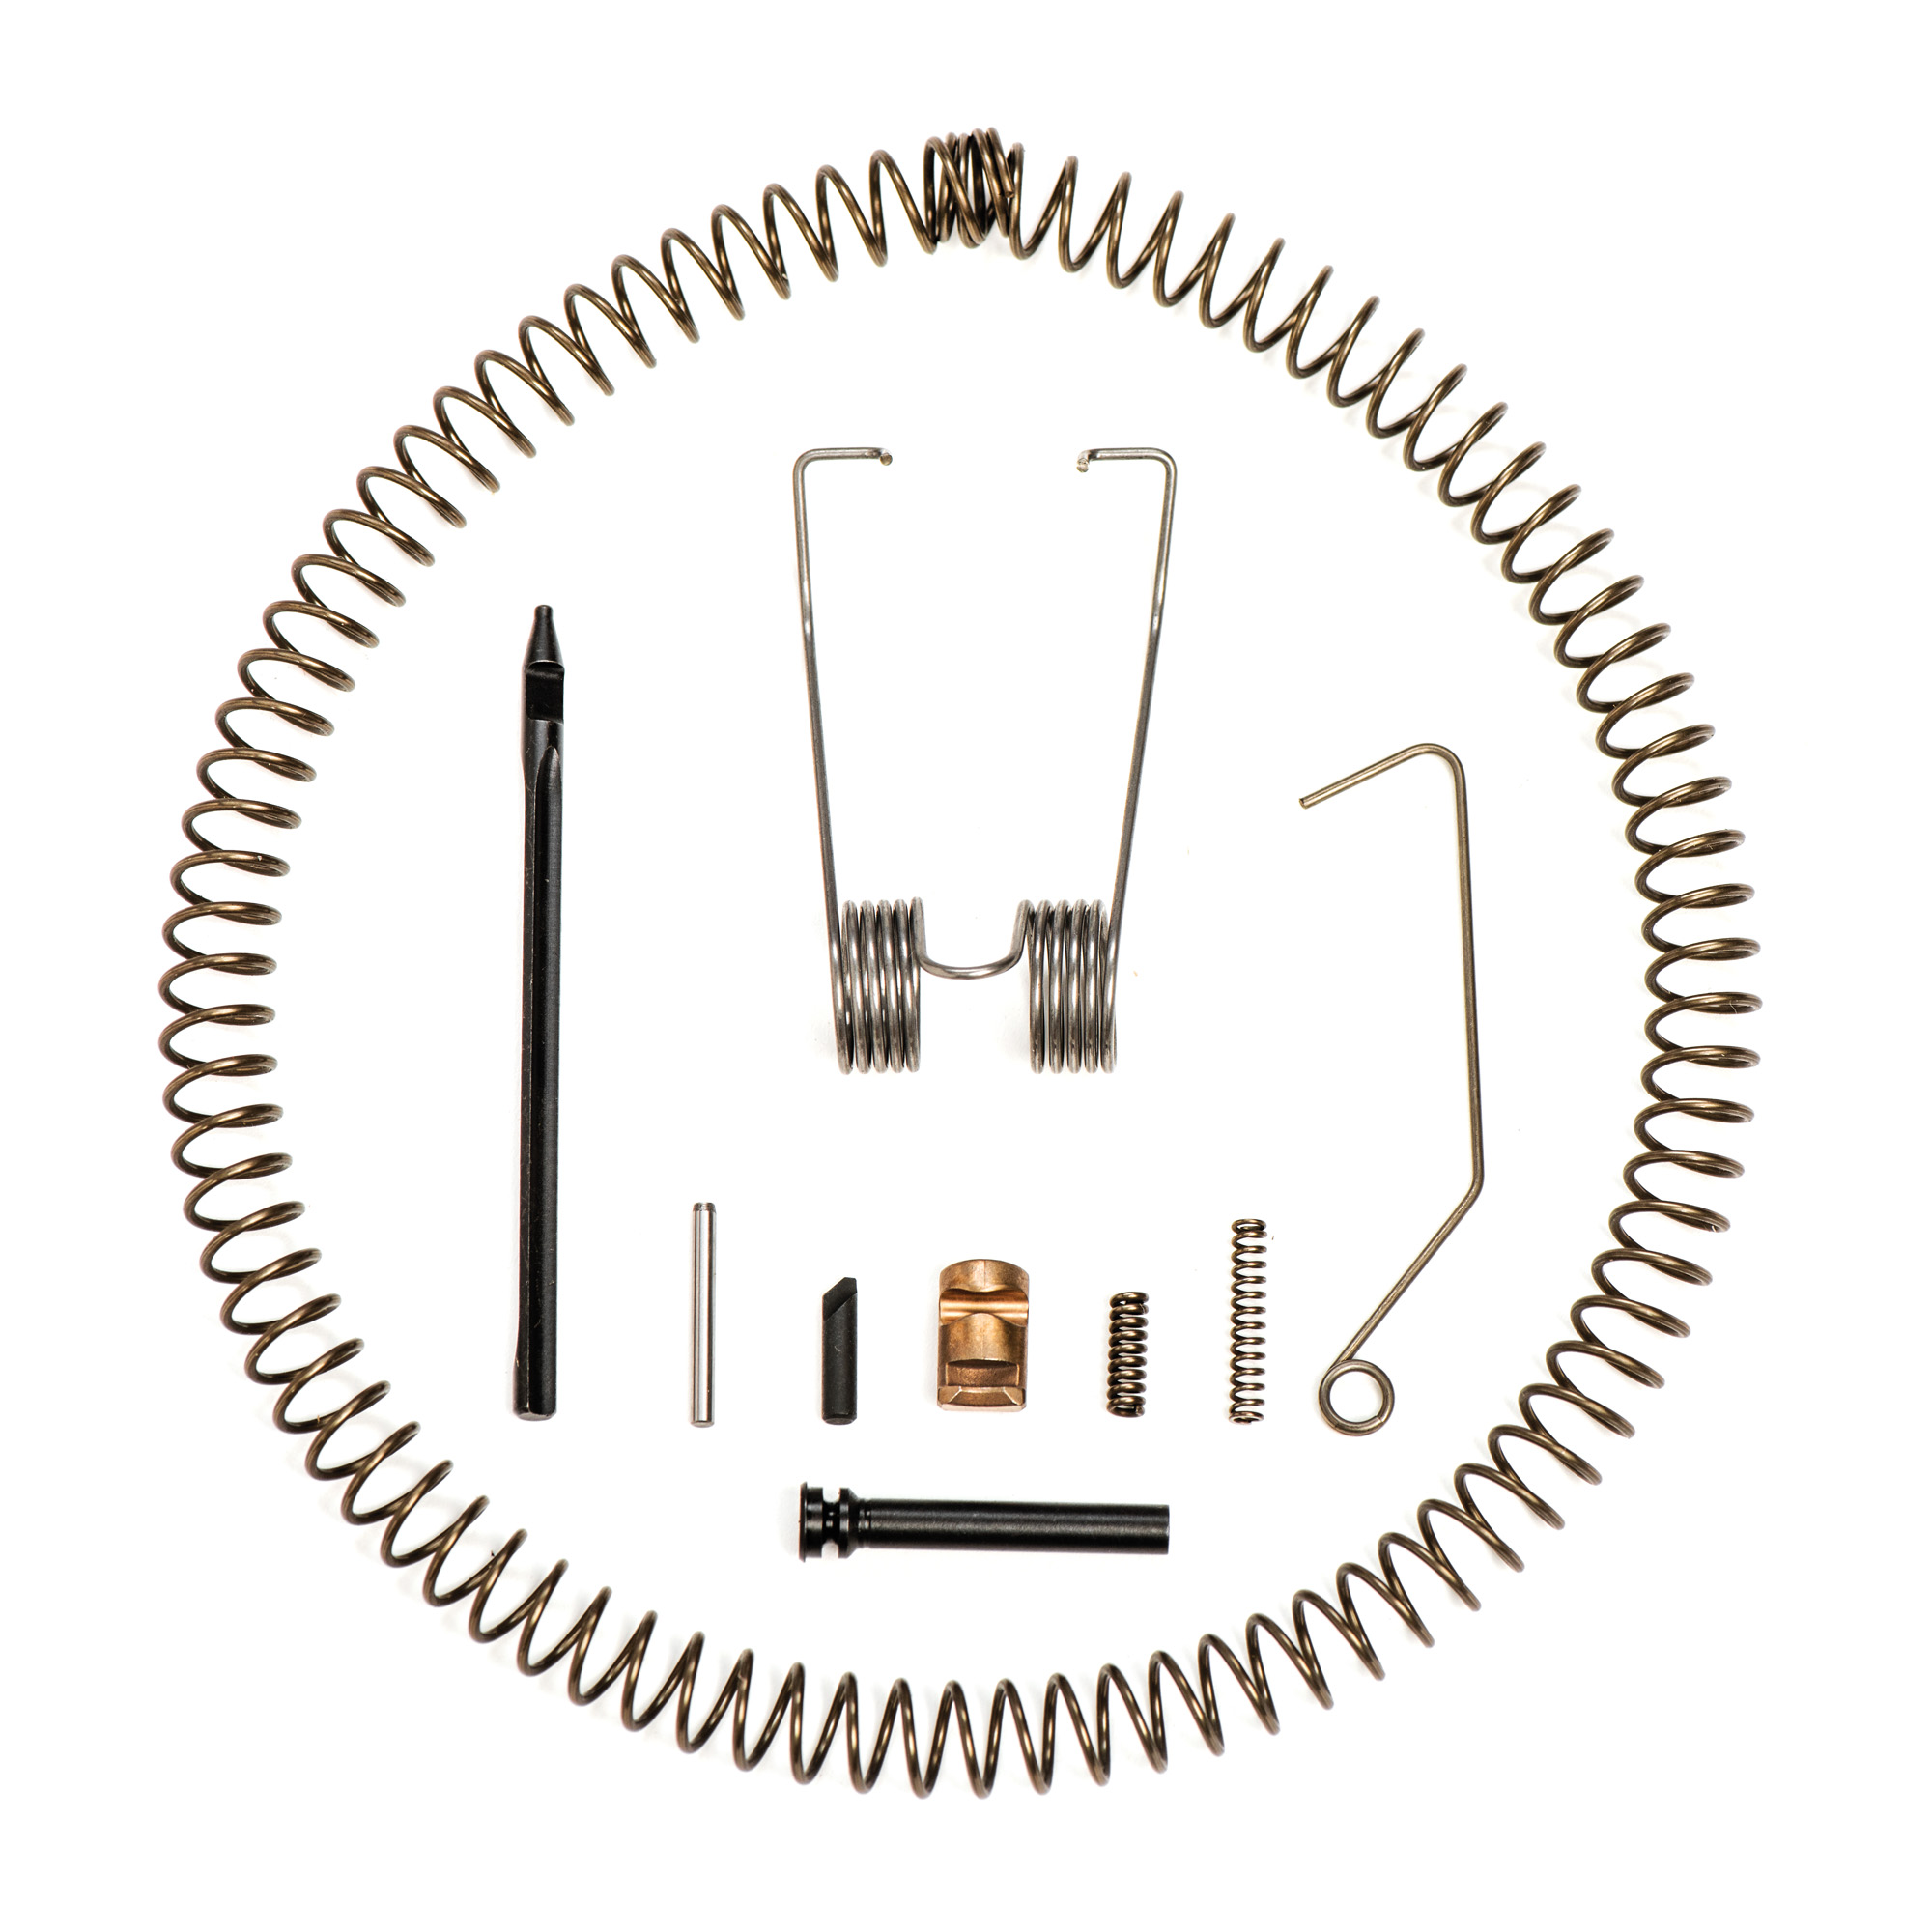 Kit Includes:(1) Recoil Spring(1) Extractor Spring(1) Hammer Spring(1) Disconnector Spring(1) Retaining Spring/Wire(1) Firing Pin(1) Firing Pin Retaining Pin(1) Extractor(1) Extractor Retaining Pin(1) Hammer/Trigger Axis Pin